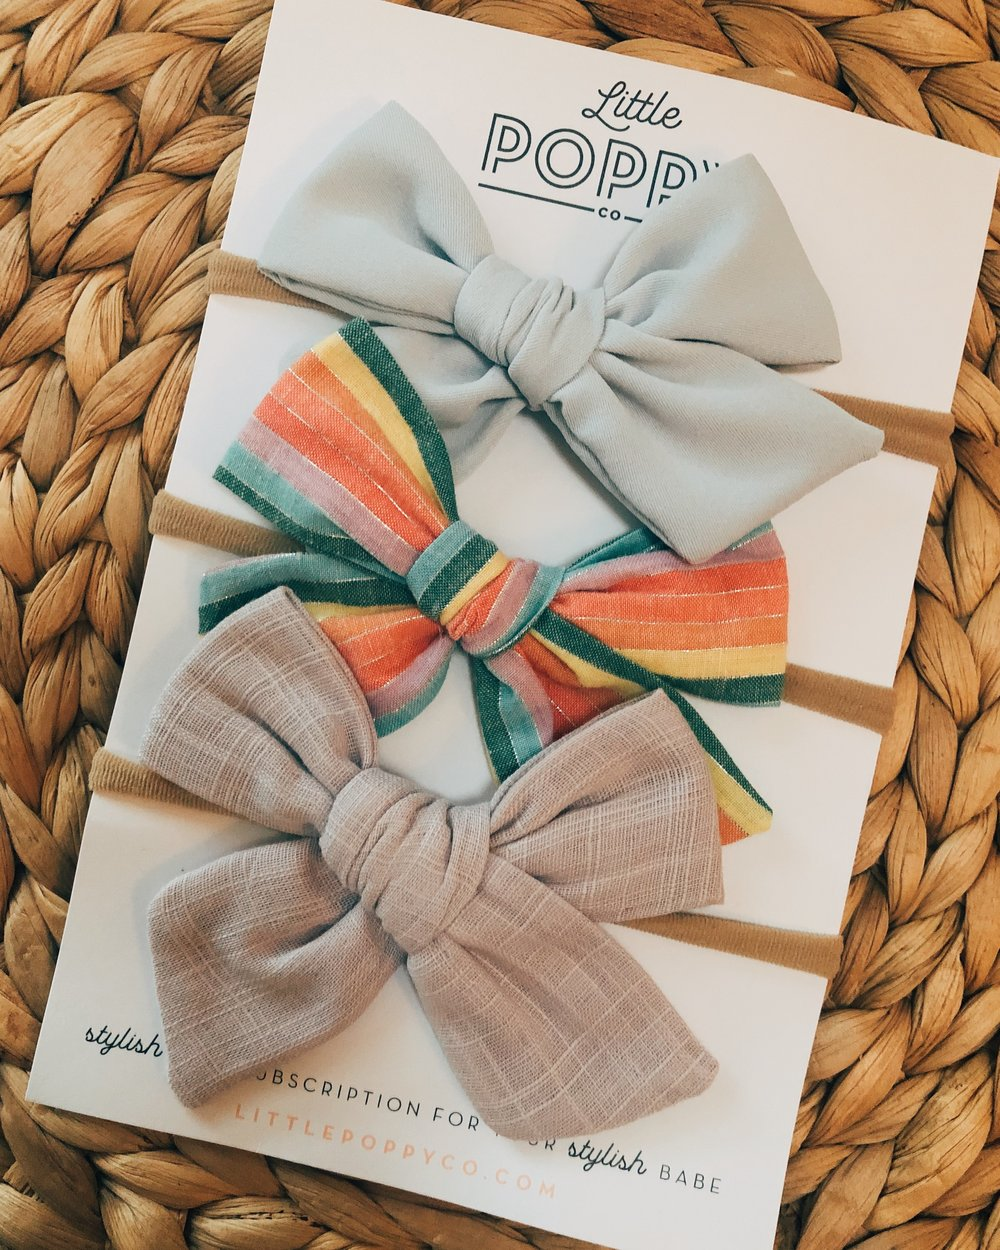 Baby's 1st subscription! These Little Poppy Co. bows came in this week and I have a feeling the blue one will match Rooney's Easter outfit perfectly.